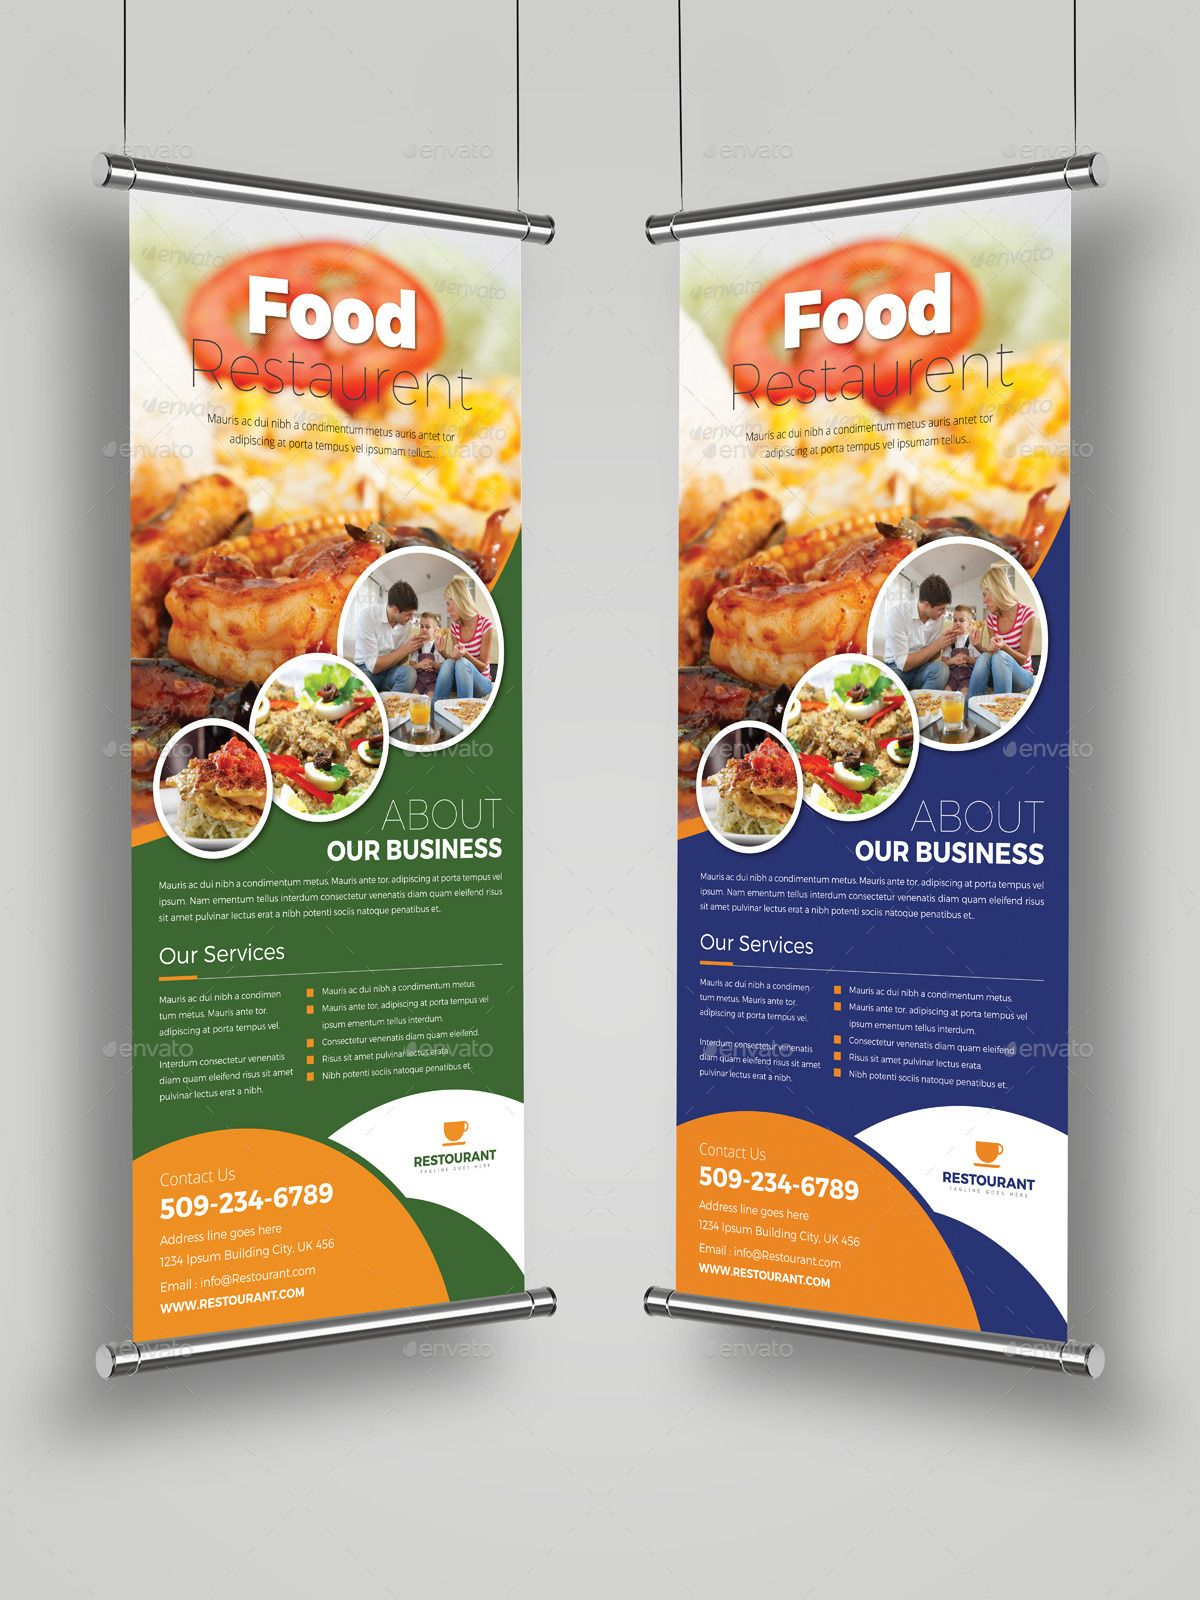 The awesome Food Restaurant Roll Up Banner Signage Template For Food Banner Temp...